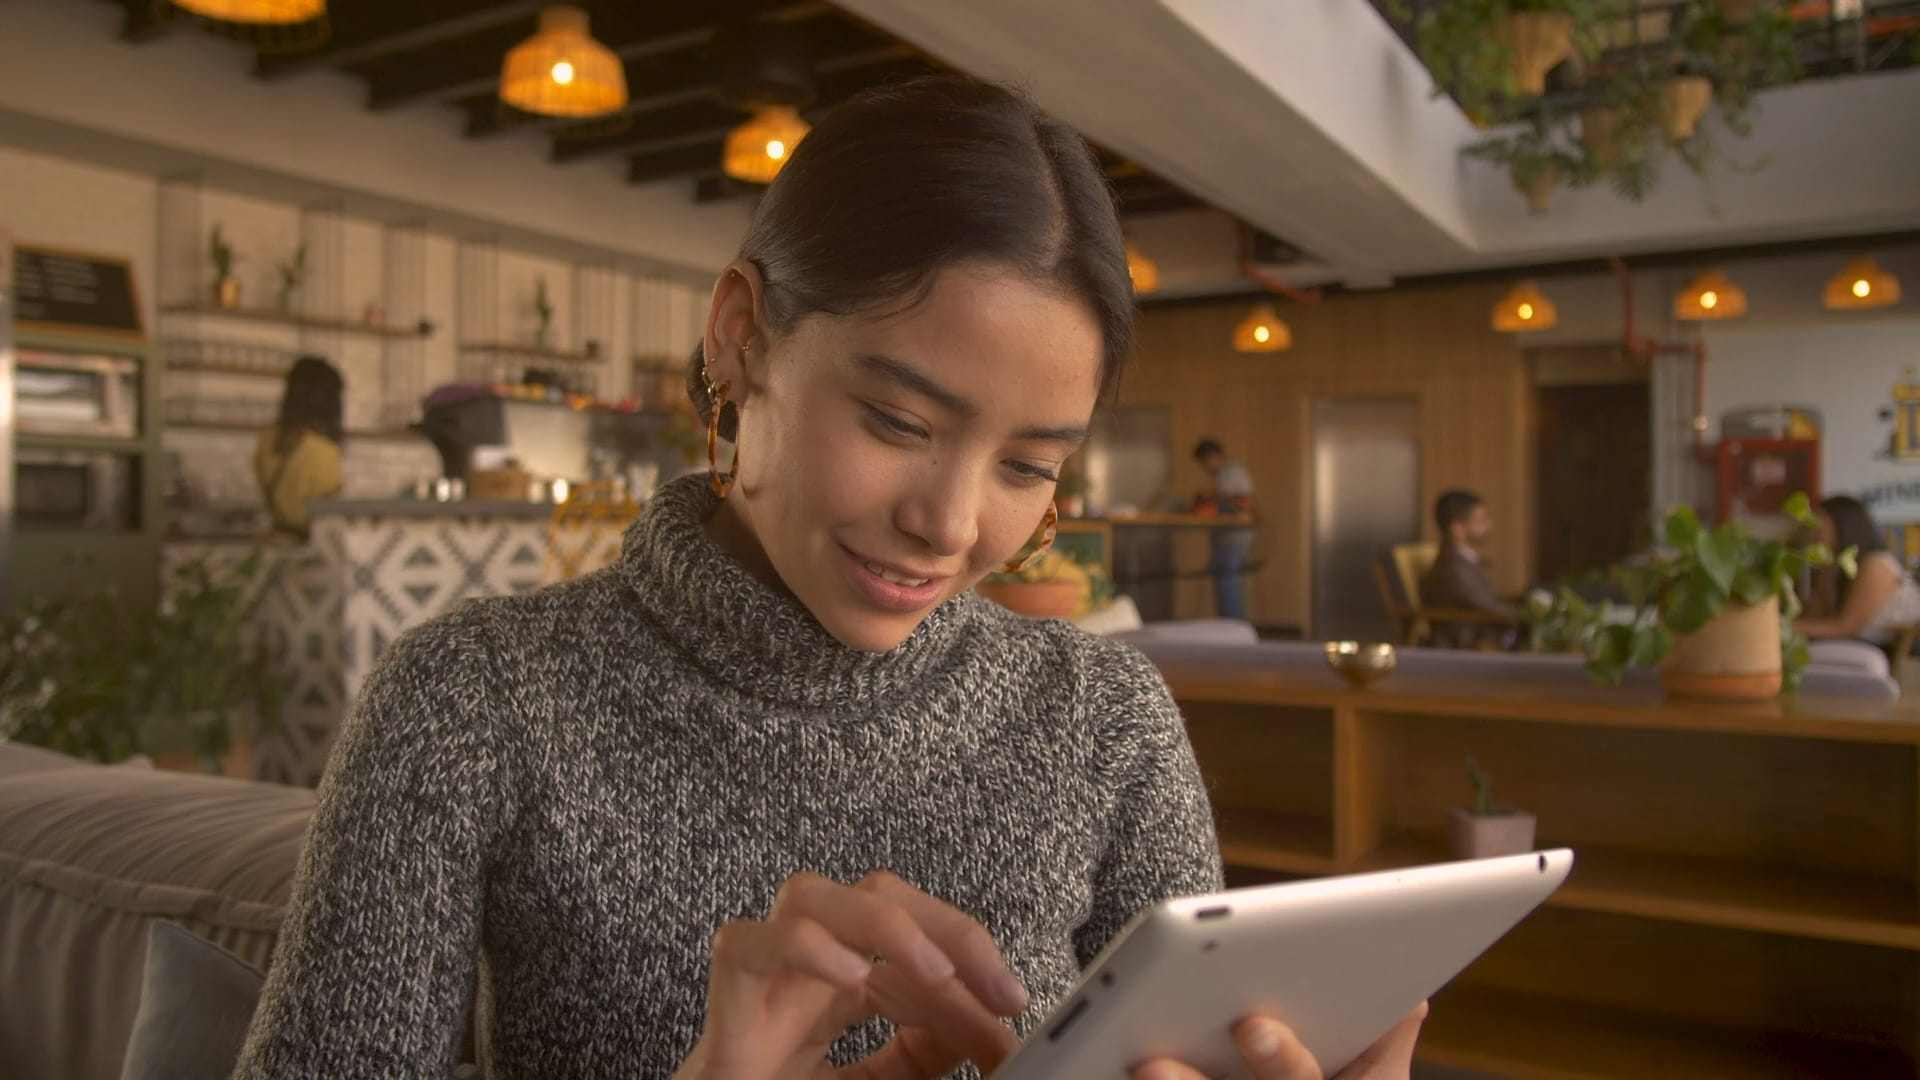 Lady using an ipad in a cafe